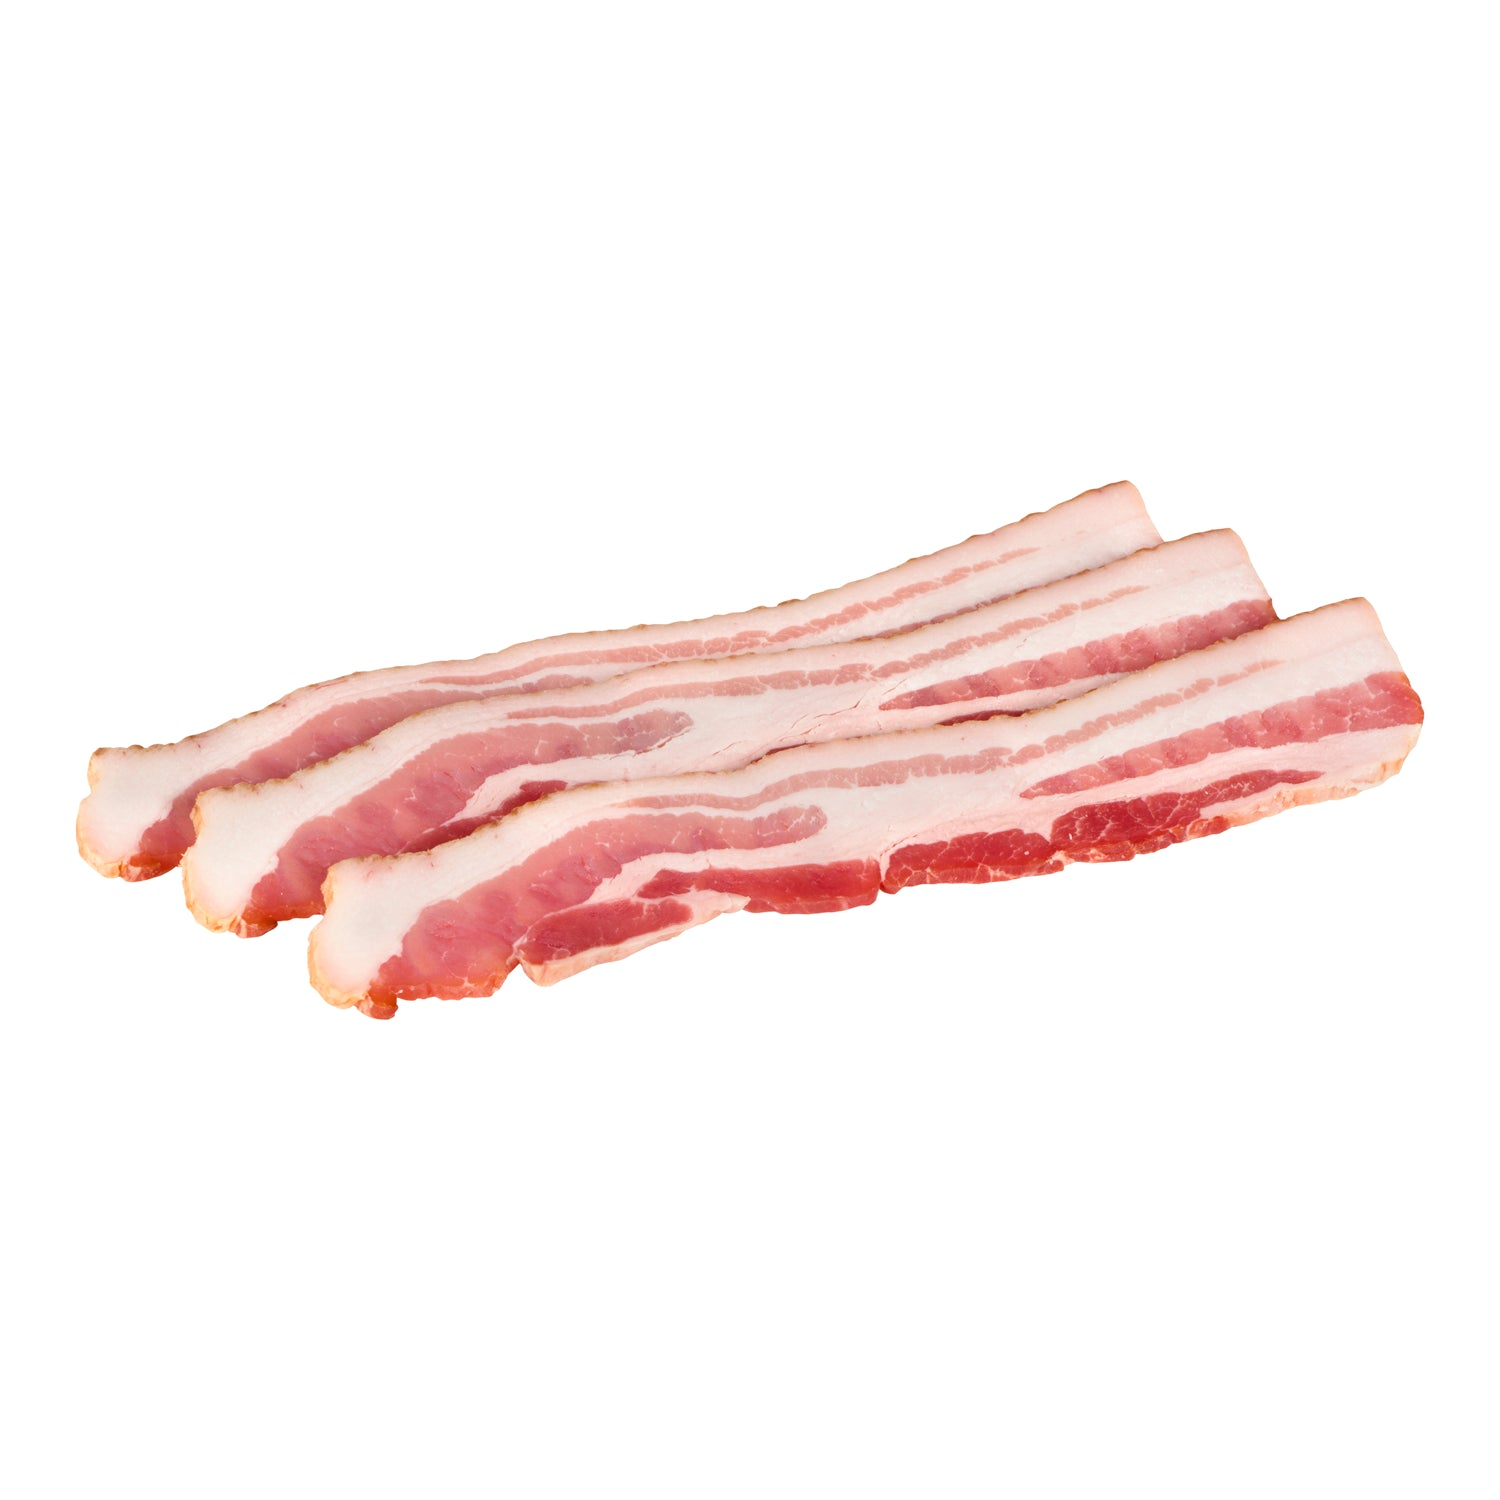 Sysco Supreme Fresh Premium Extra Thick Sliced Centre Cut Bacon 5 kg - 1 Pack [$11.80/kg]